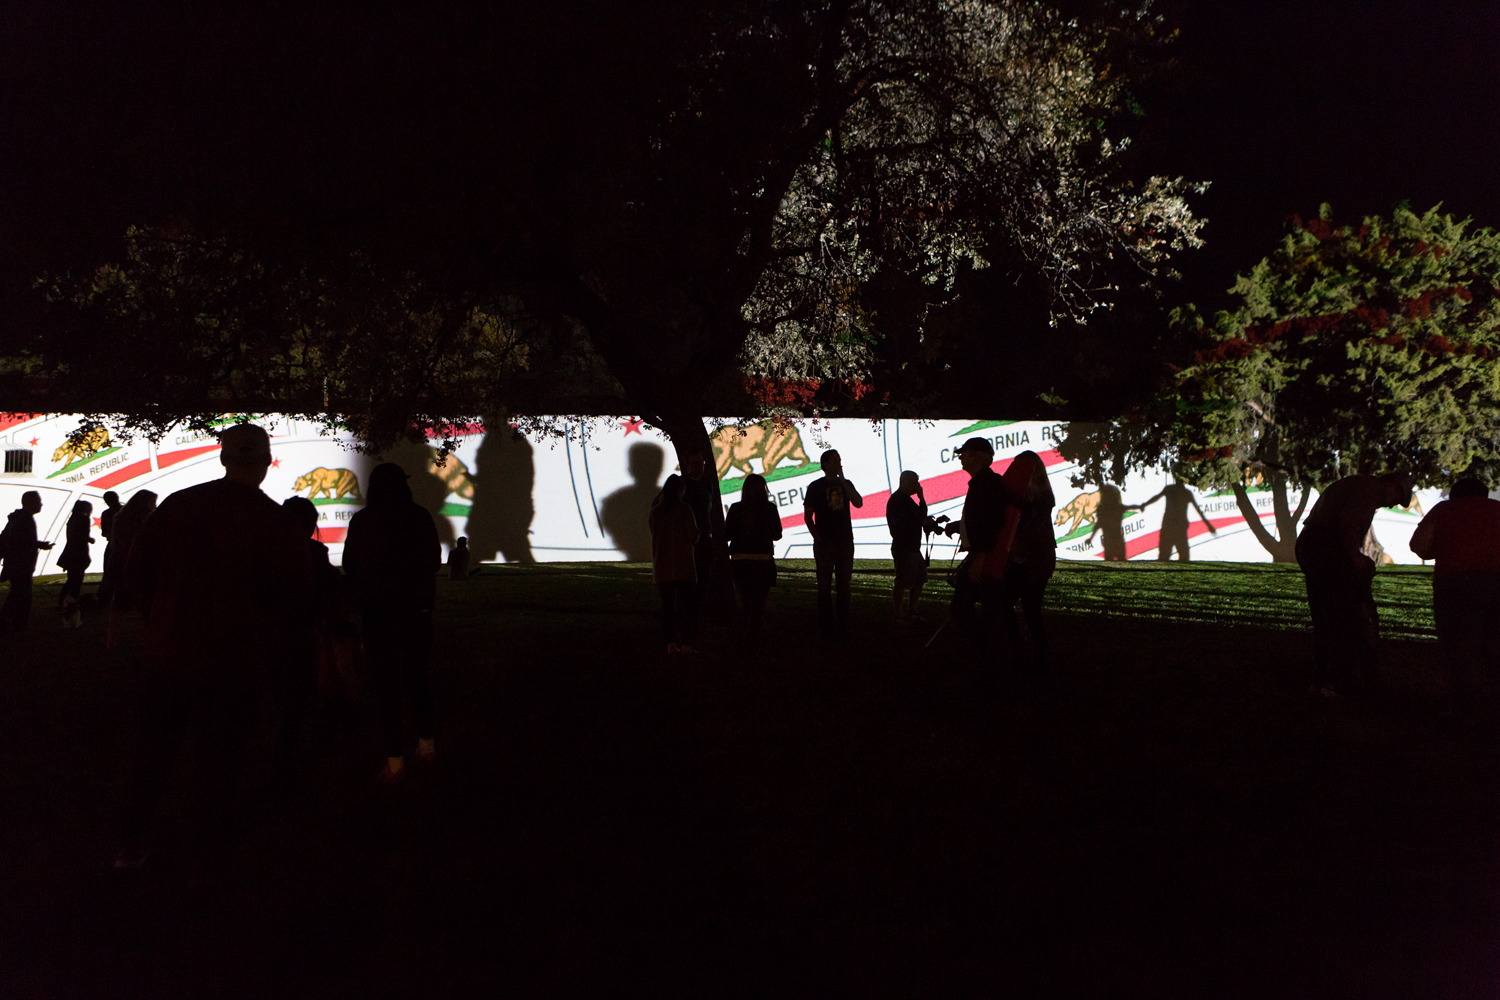 Light Show at Sutter's Fort by Swiss Artist Gerry Hofstetter